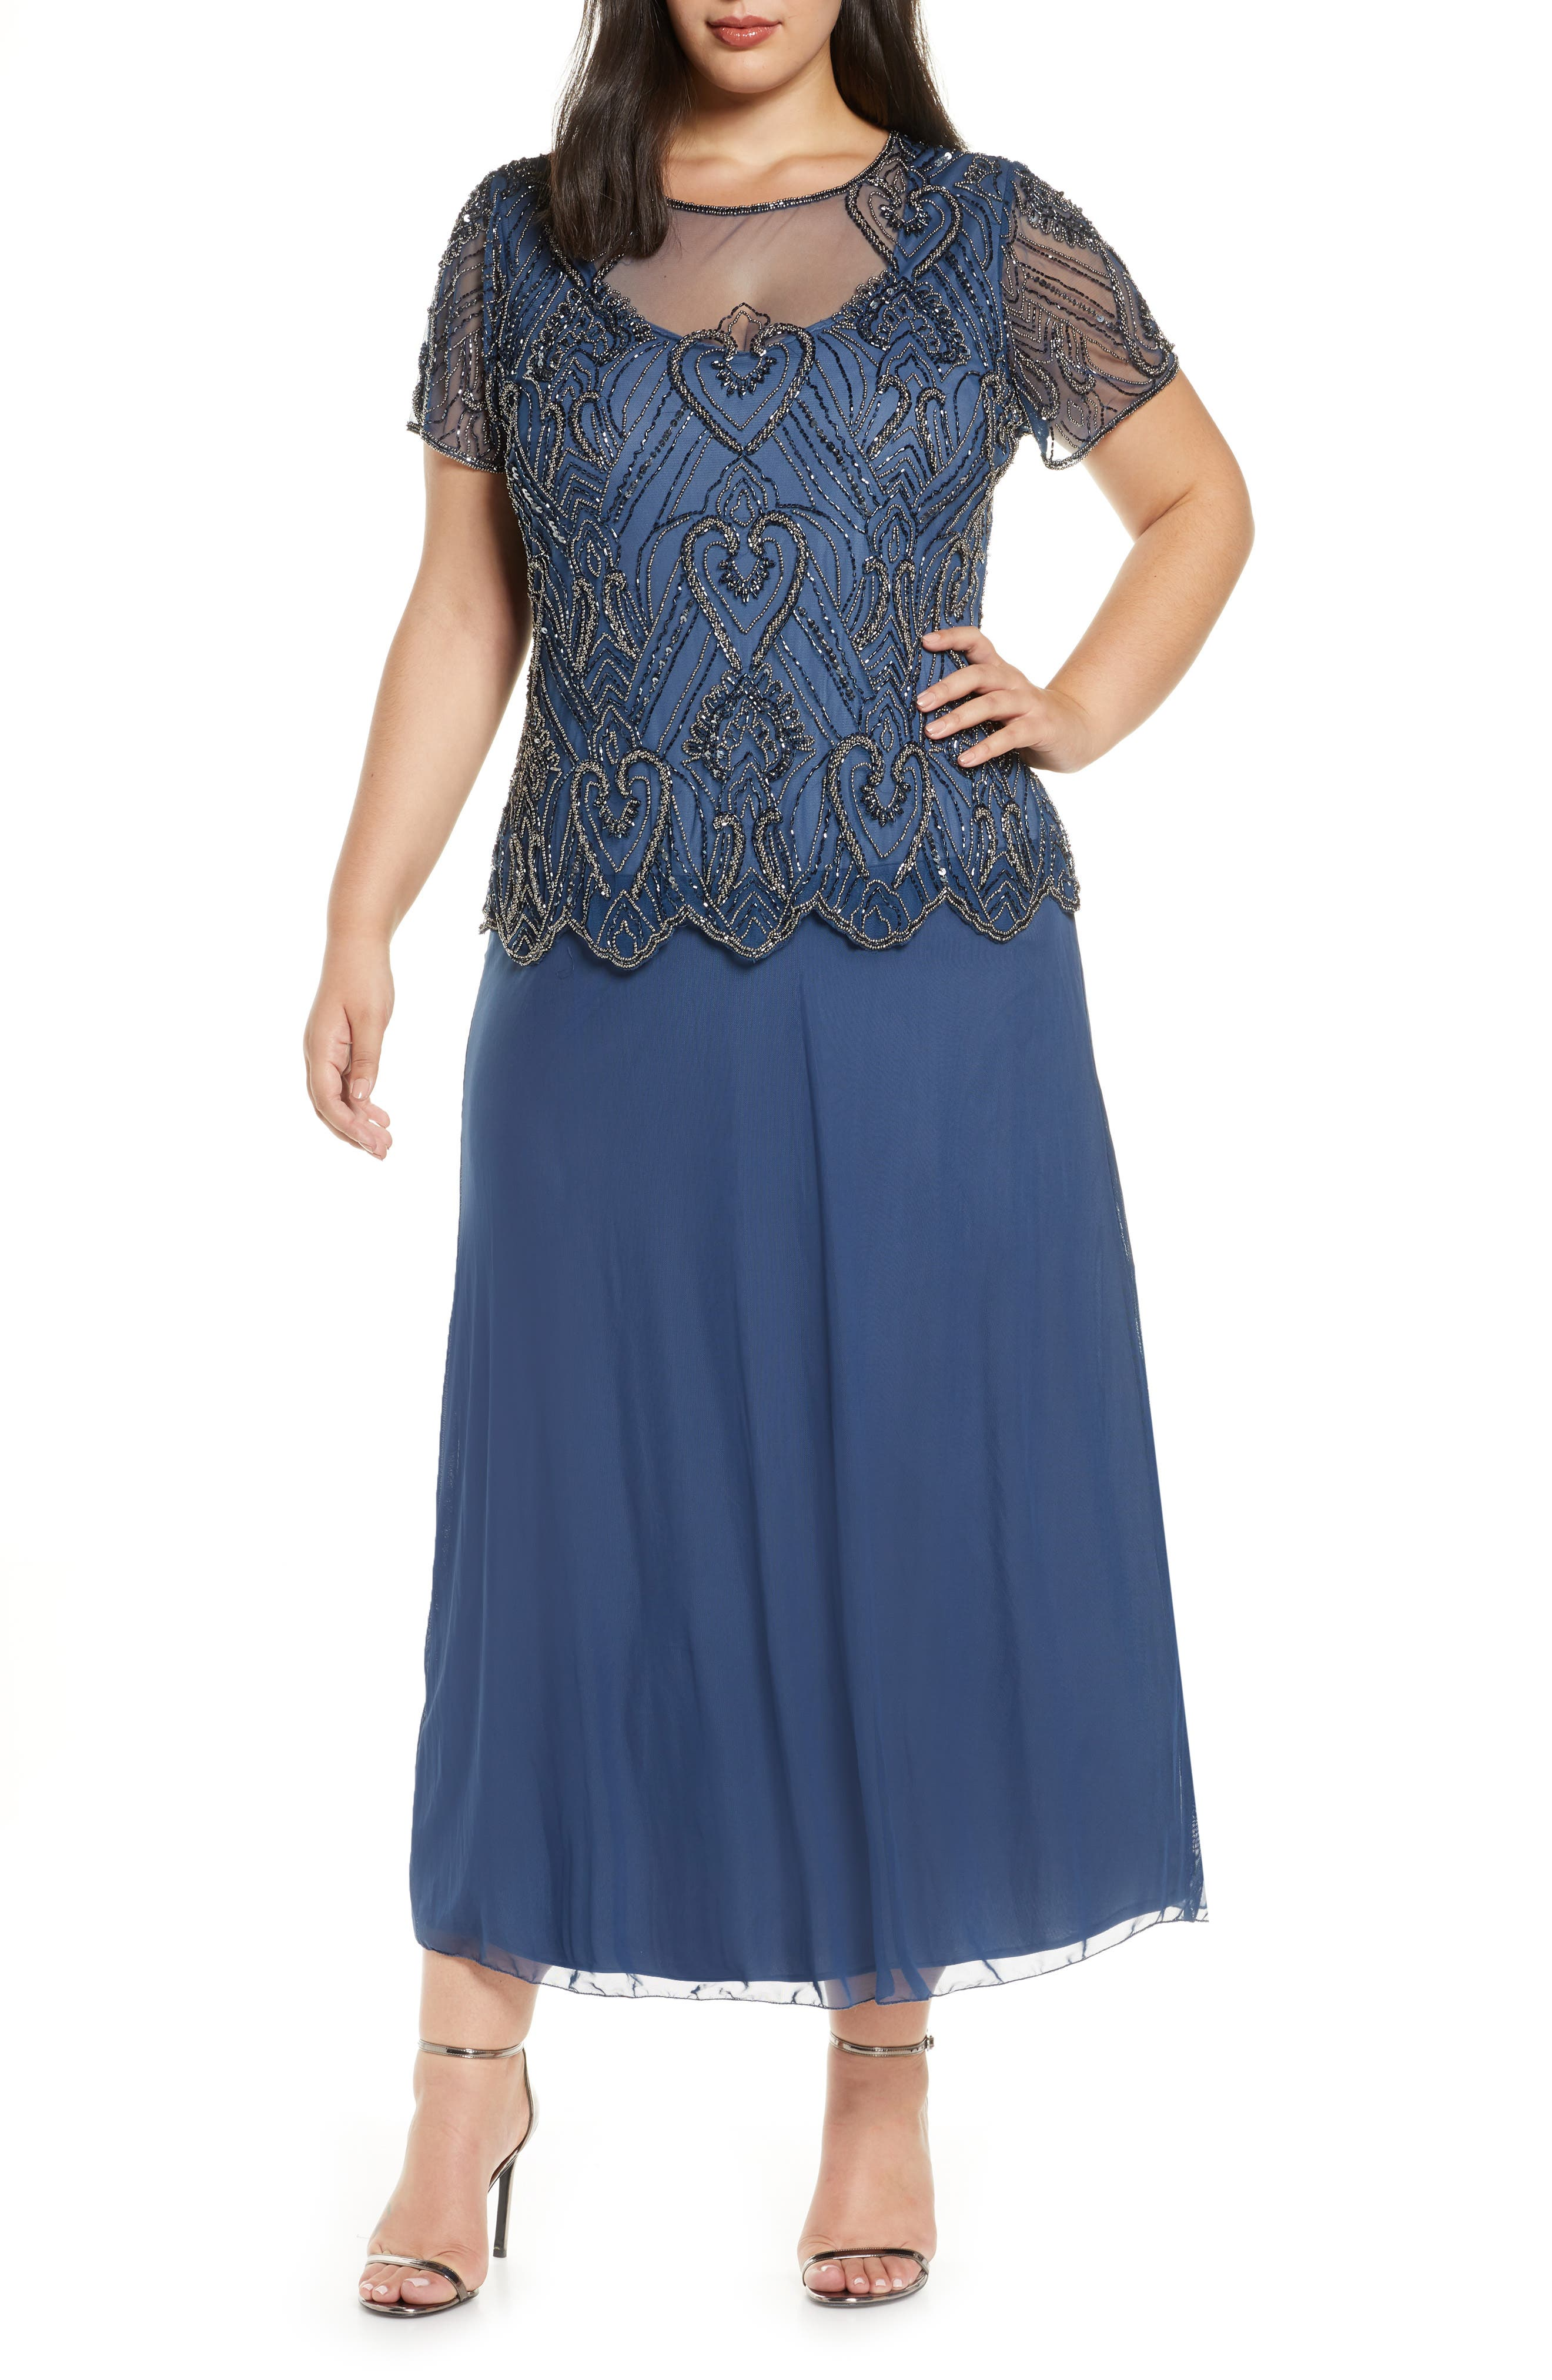 1920s Plus Size Flapper Dresses, Gatsby Dresses, Flapper Costumes Plus Size Womens Pisarro Nights Embellished Mesh Mock Two-Piece Gown Size 22W - Blue $248.00 AT vintagedancer.com